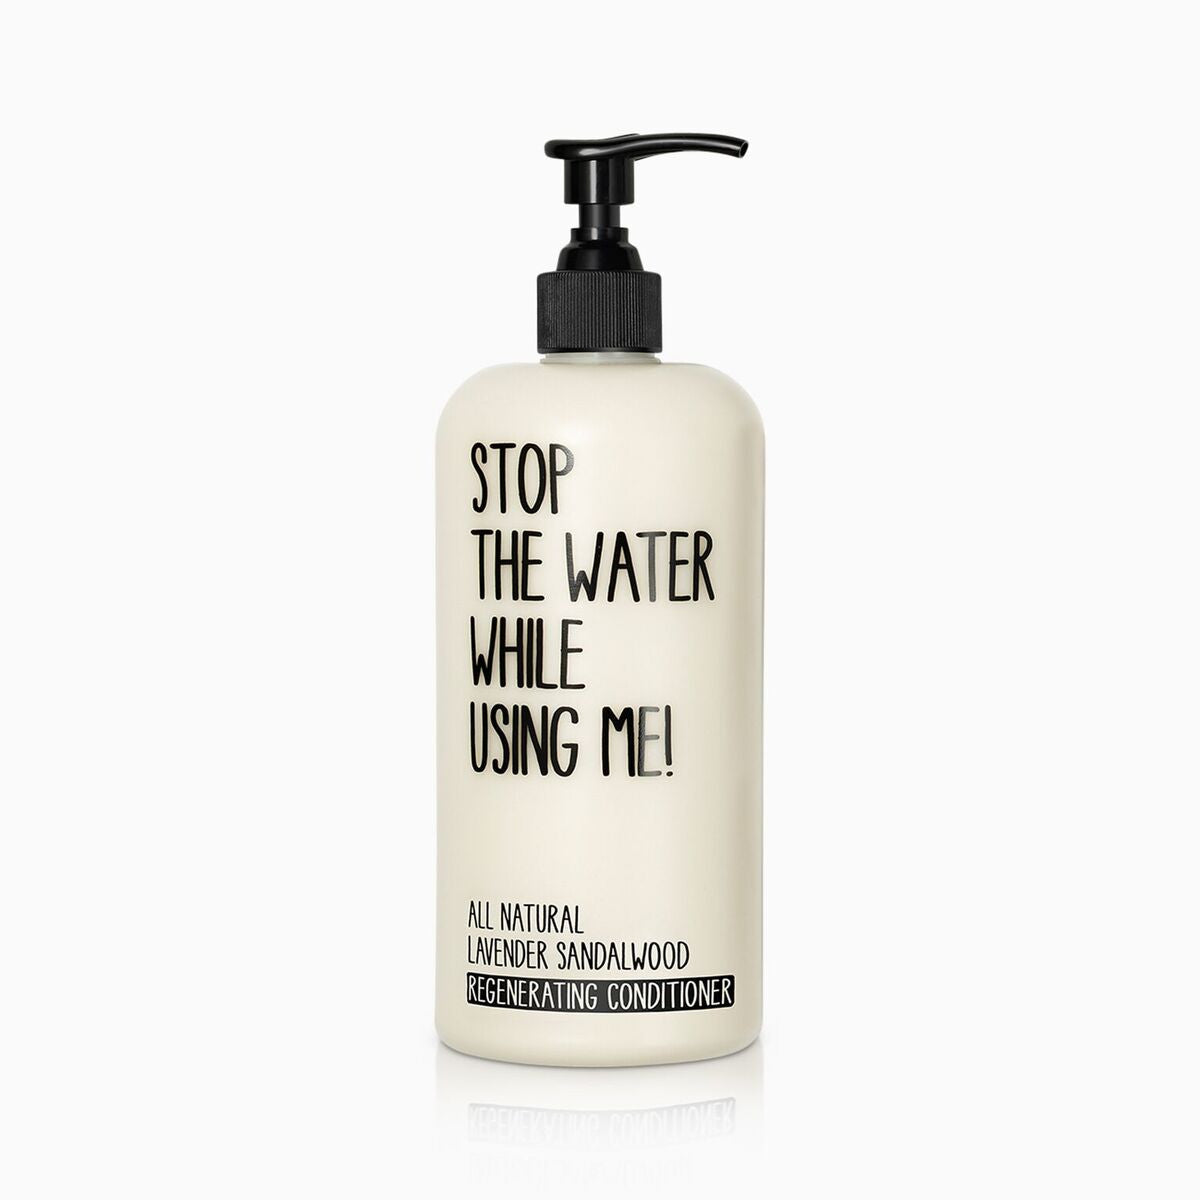 stop the water while using me - conditioner